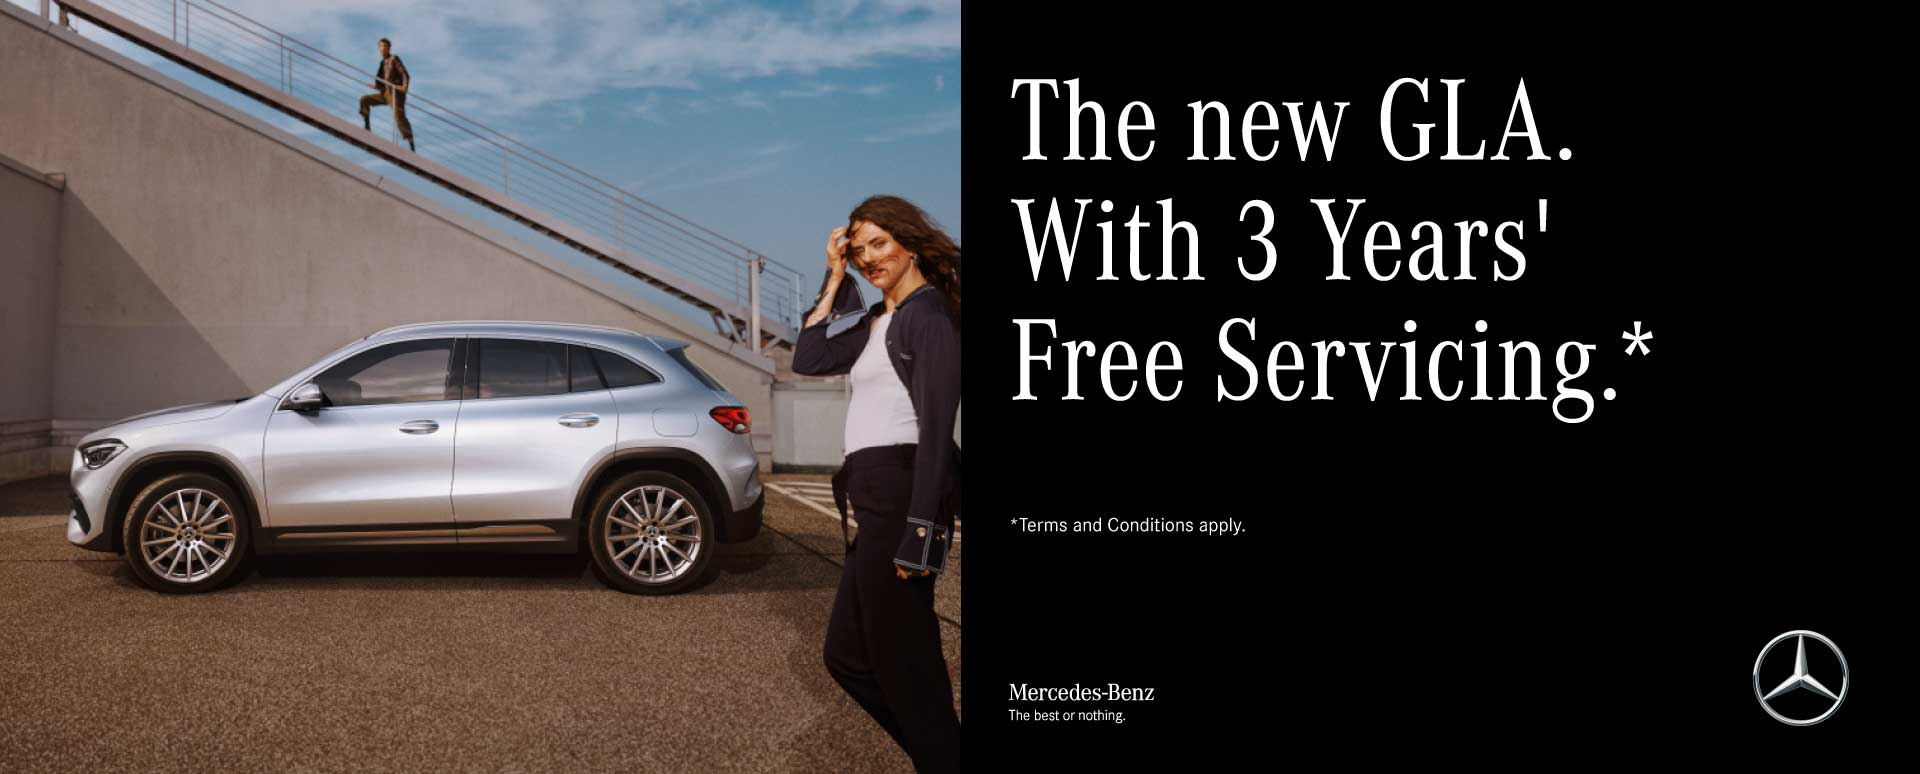 3 Year's Free Servicing with the New GLA